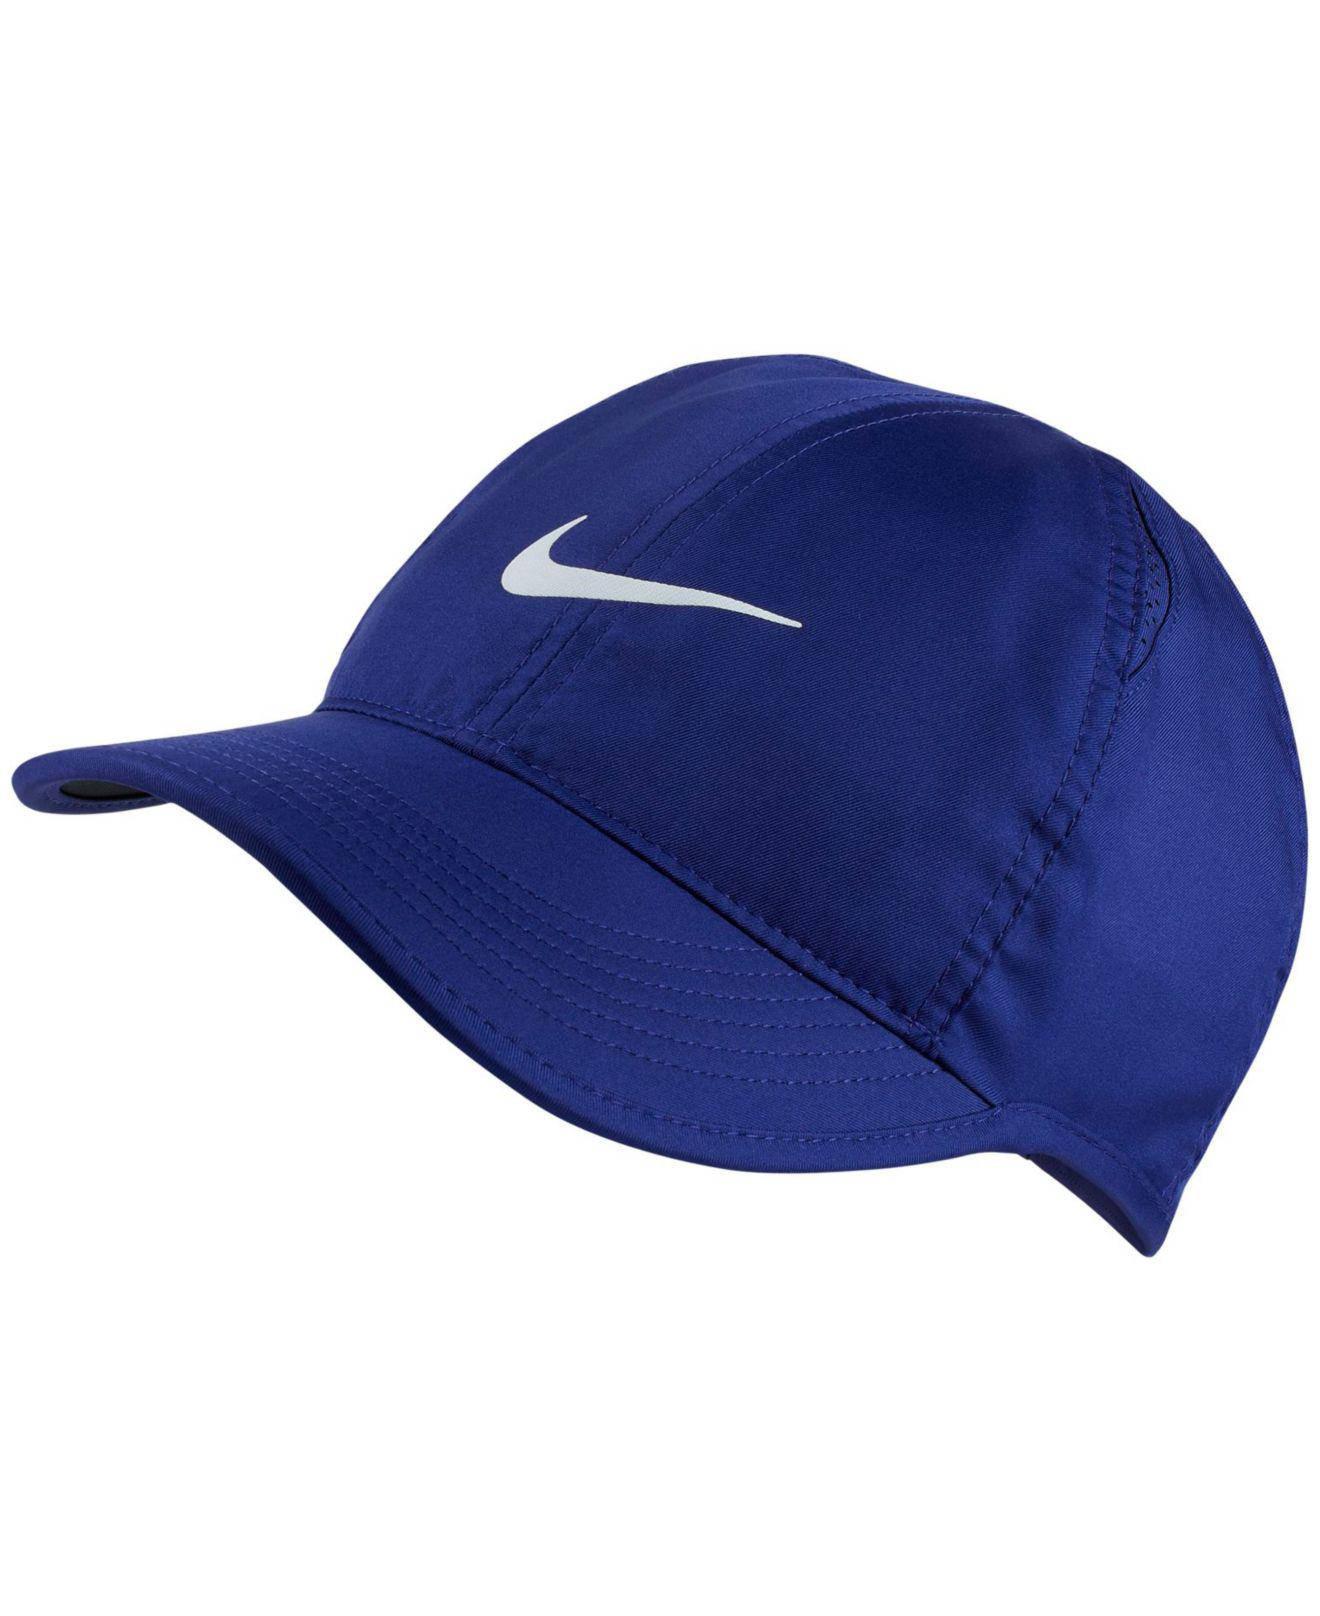 Lyst - Nike Featherlight Cap in Blue 87d071d3f49f